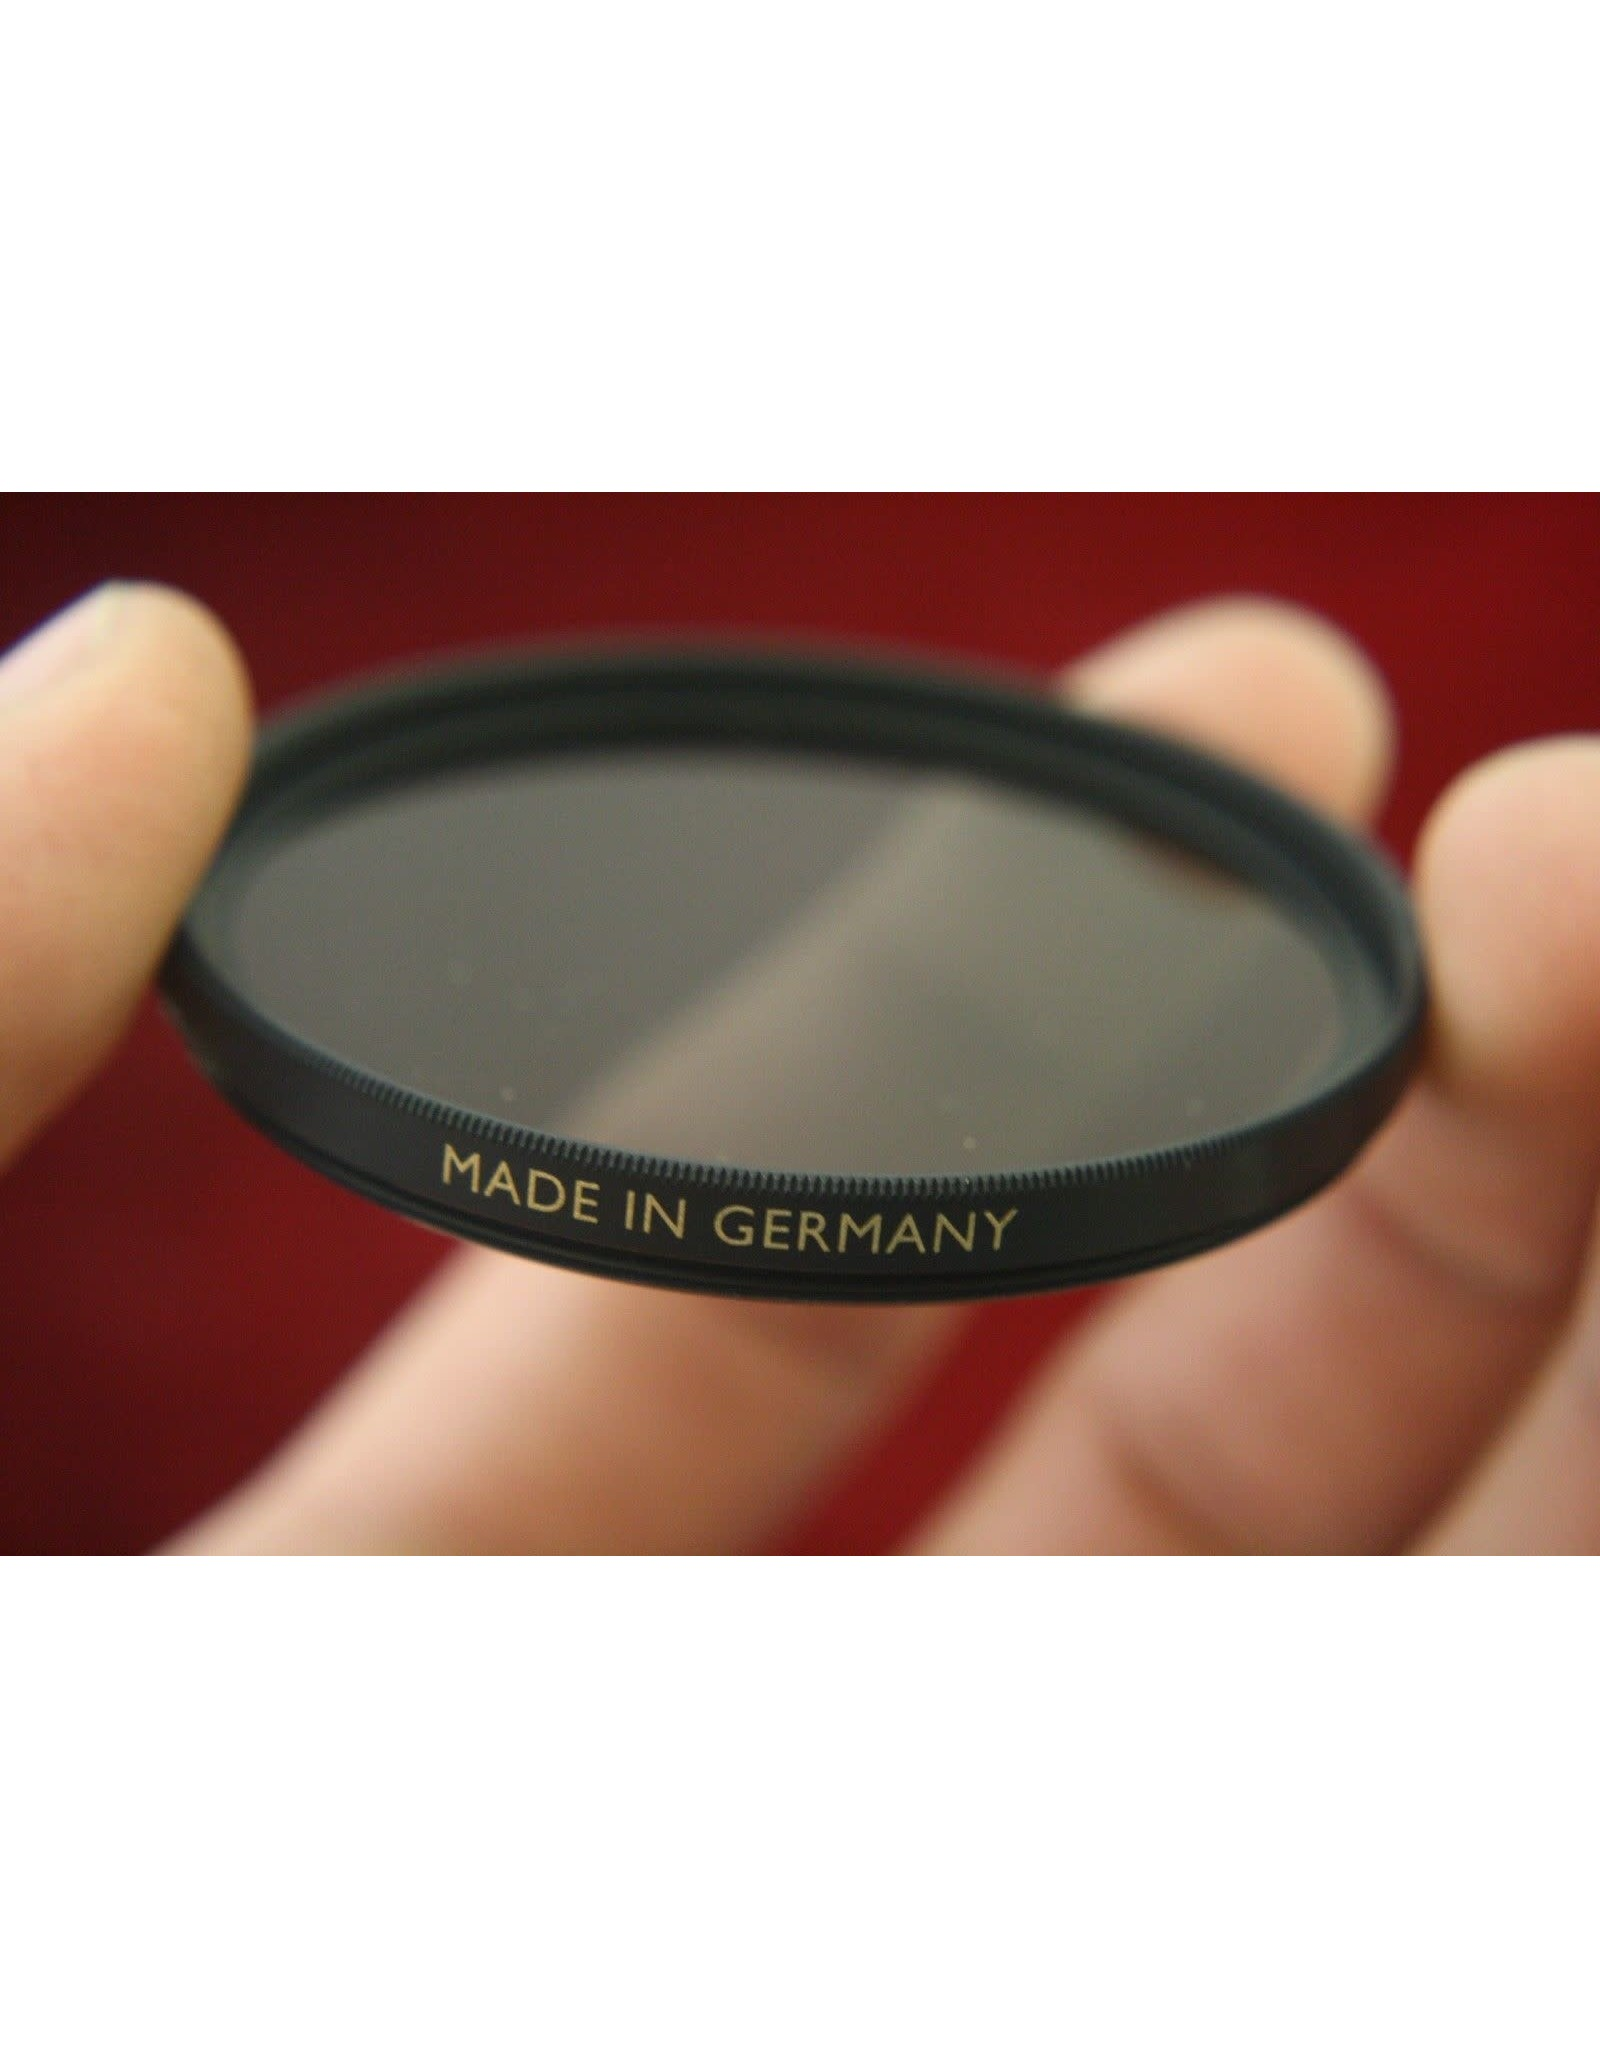 B+W 58mm ND 0.6 (4X) 102 Neutral Density 58 mm Glass Filter#65-072871